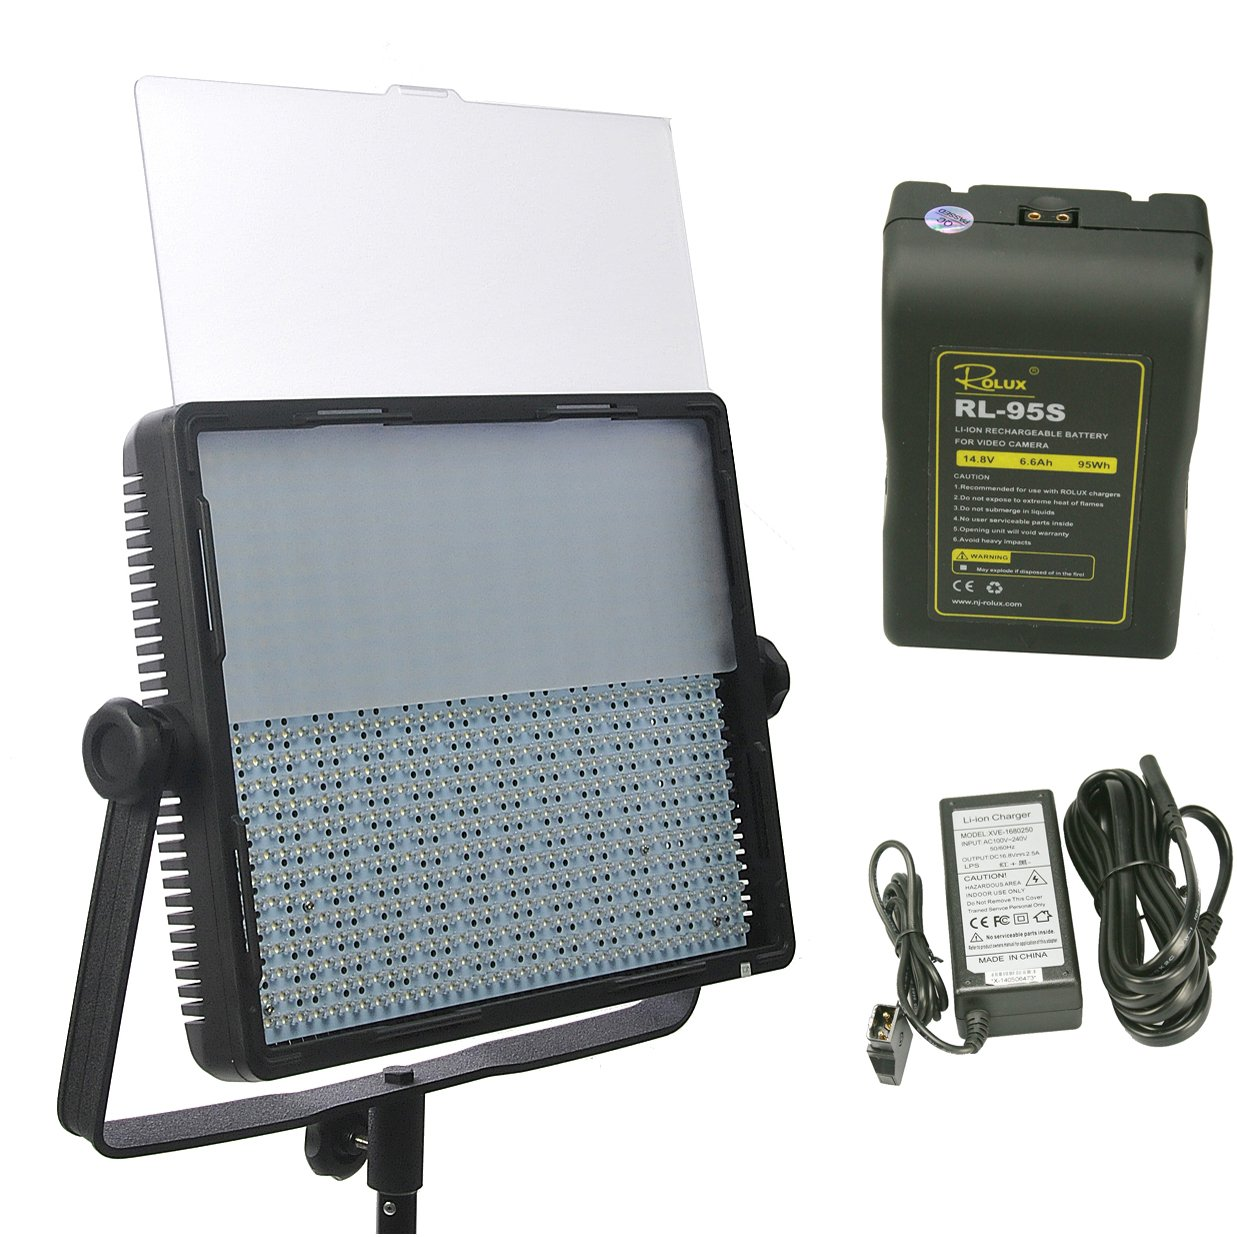 ePhotoInc 900LED Professional Photo Video Studio Photography Lighting Panel with V Mount Battery and Charger CN9SD95 by ePhoto